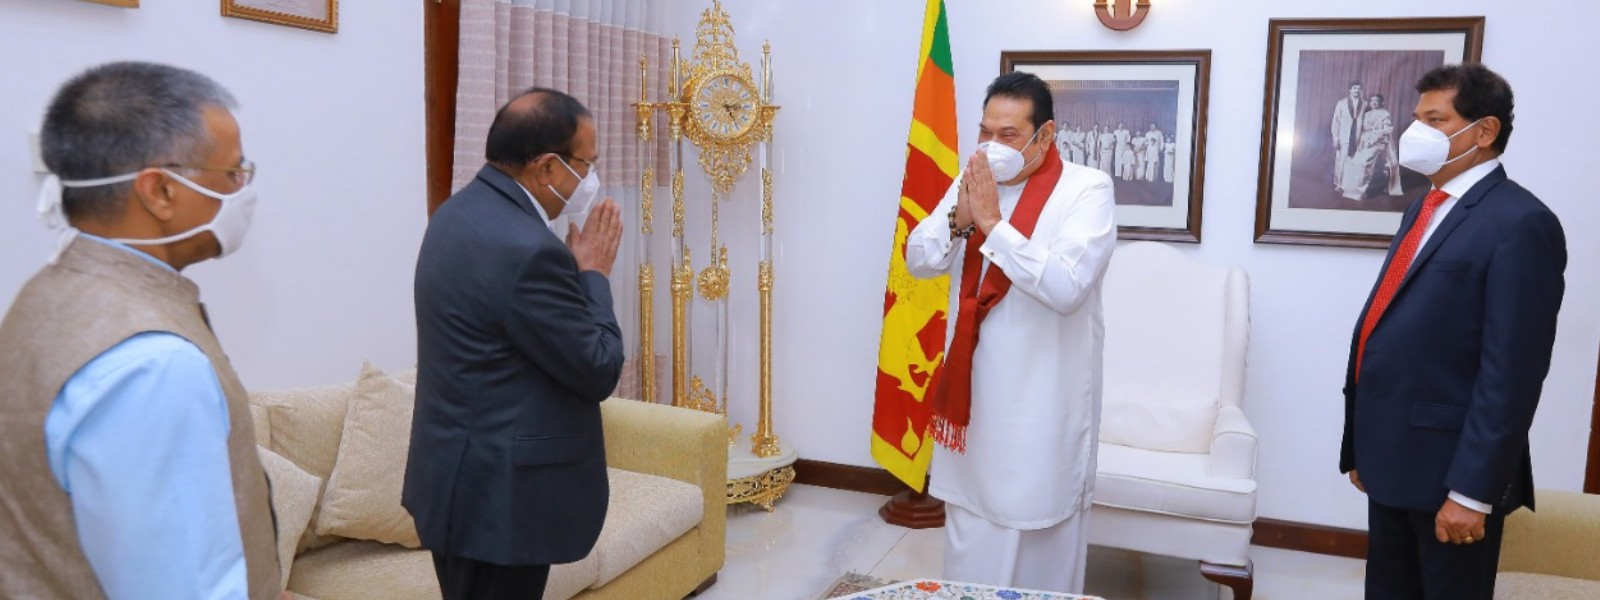 Indian National Security Advisor meets Sri Lankan PM